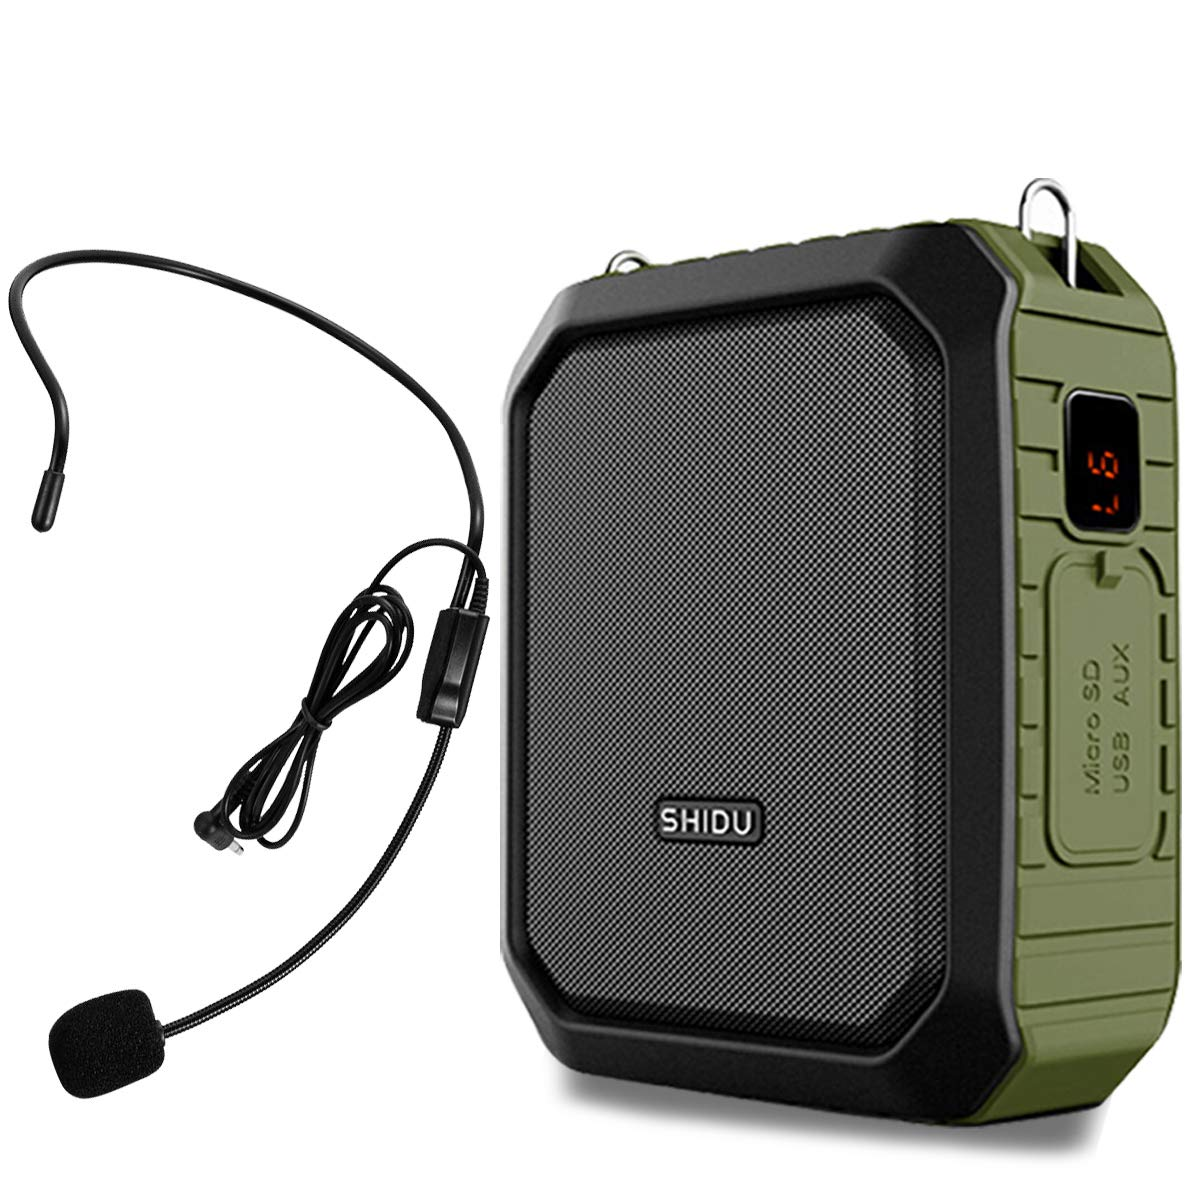 Voice Amplifier Portable with Wired Headset Microphone 18W 4400mAh Support Bluetooth Speaking Recording Waterproof Powerbank for Outdoors Teachers Tour Guide Whisper M800